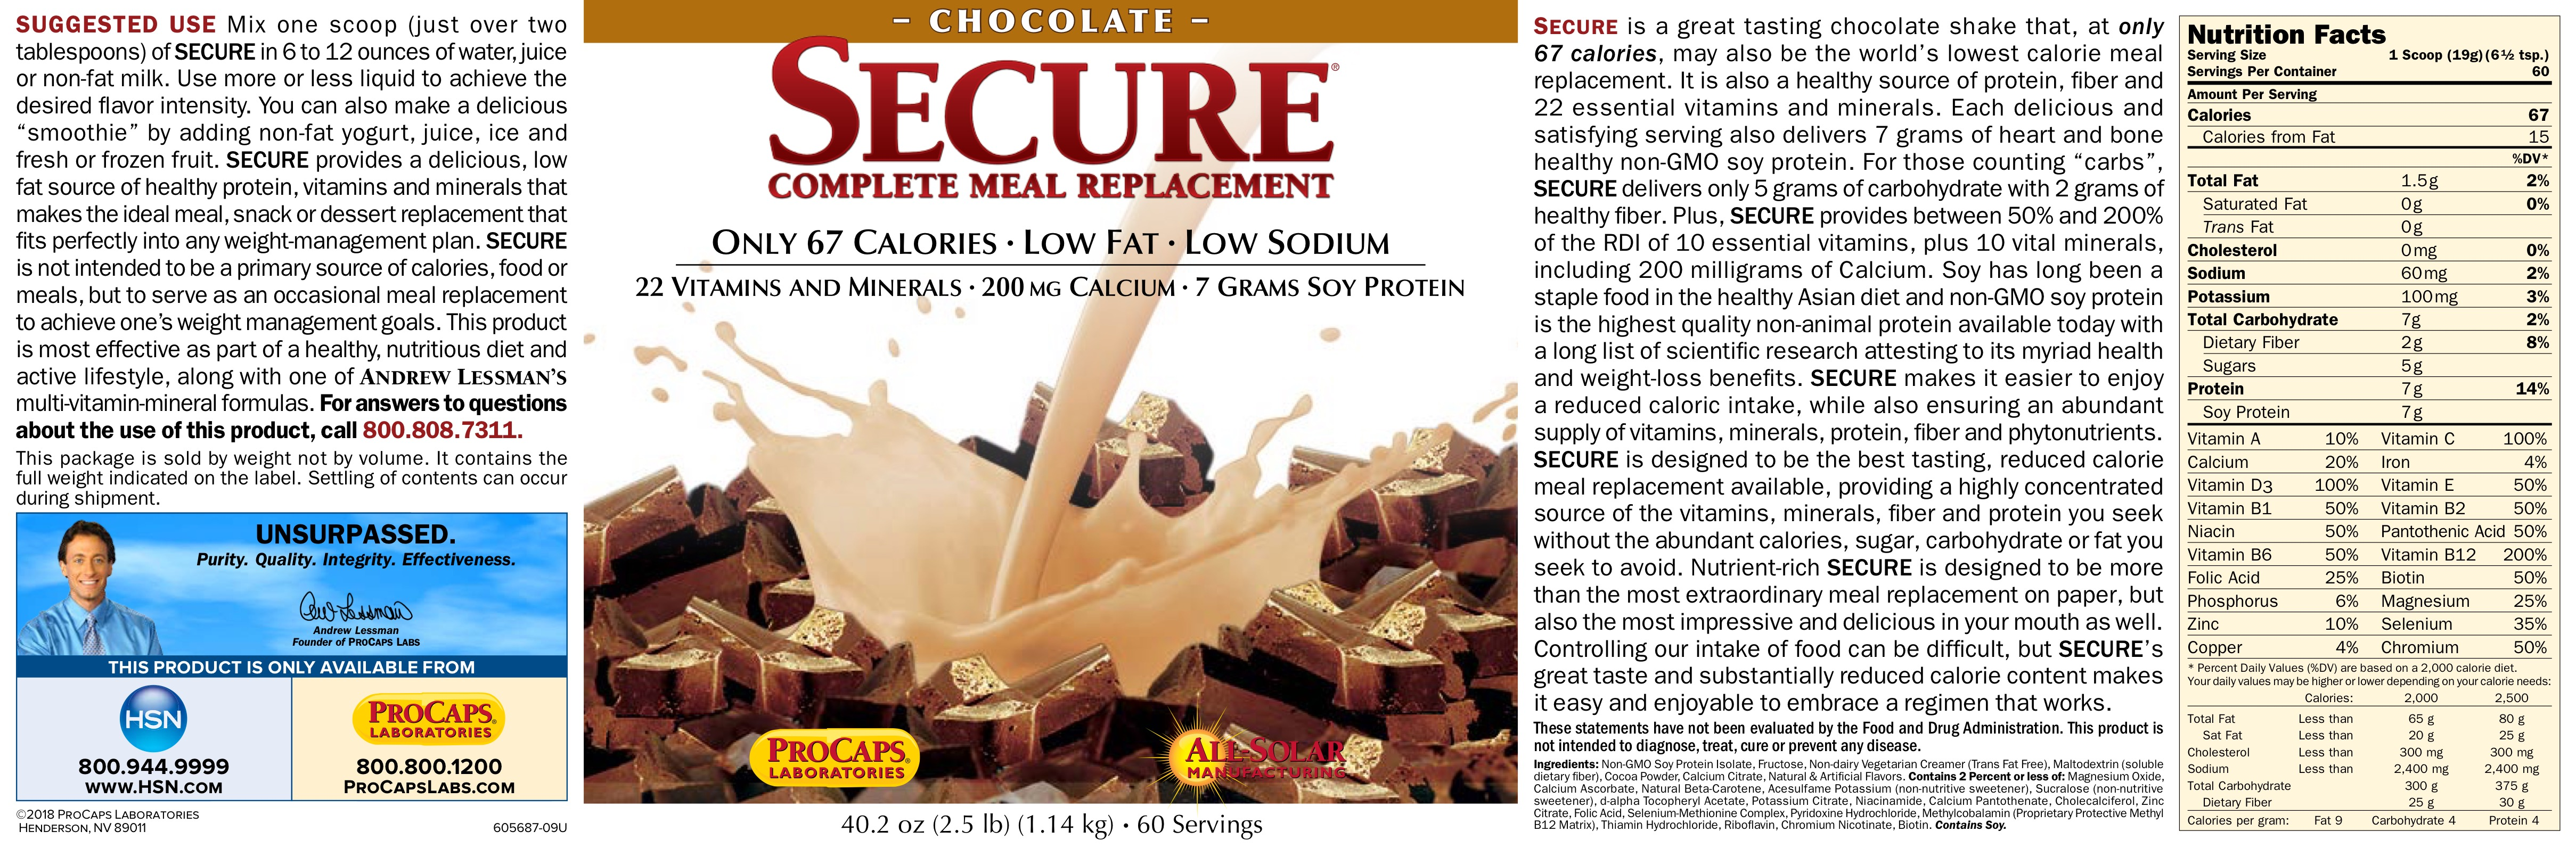 Secure-Soy-Complete-Meal-Replacement-Chocolate